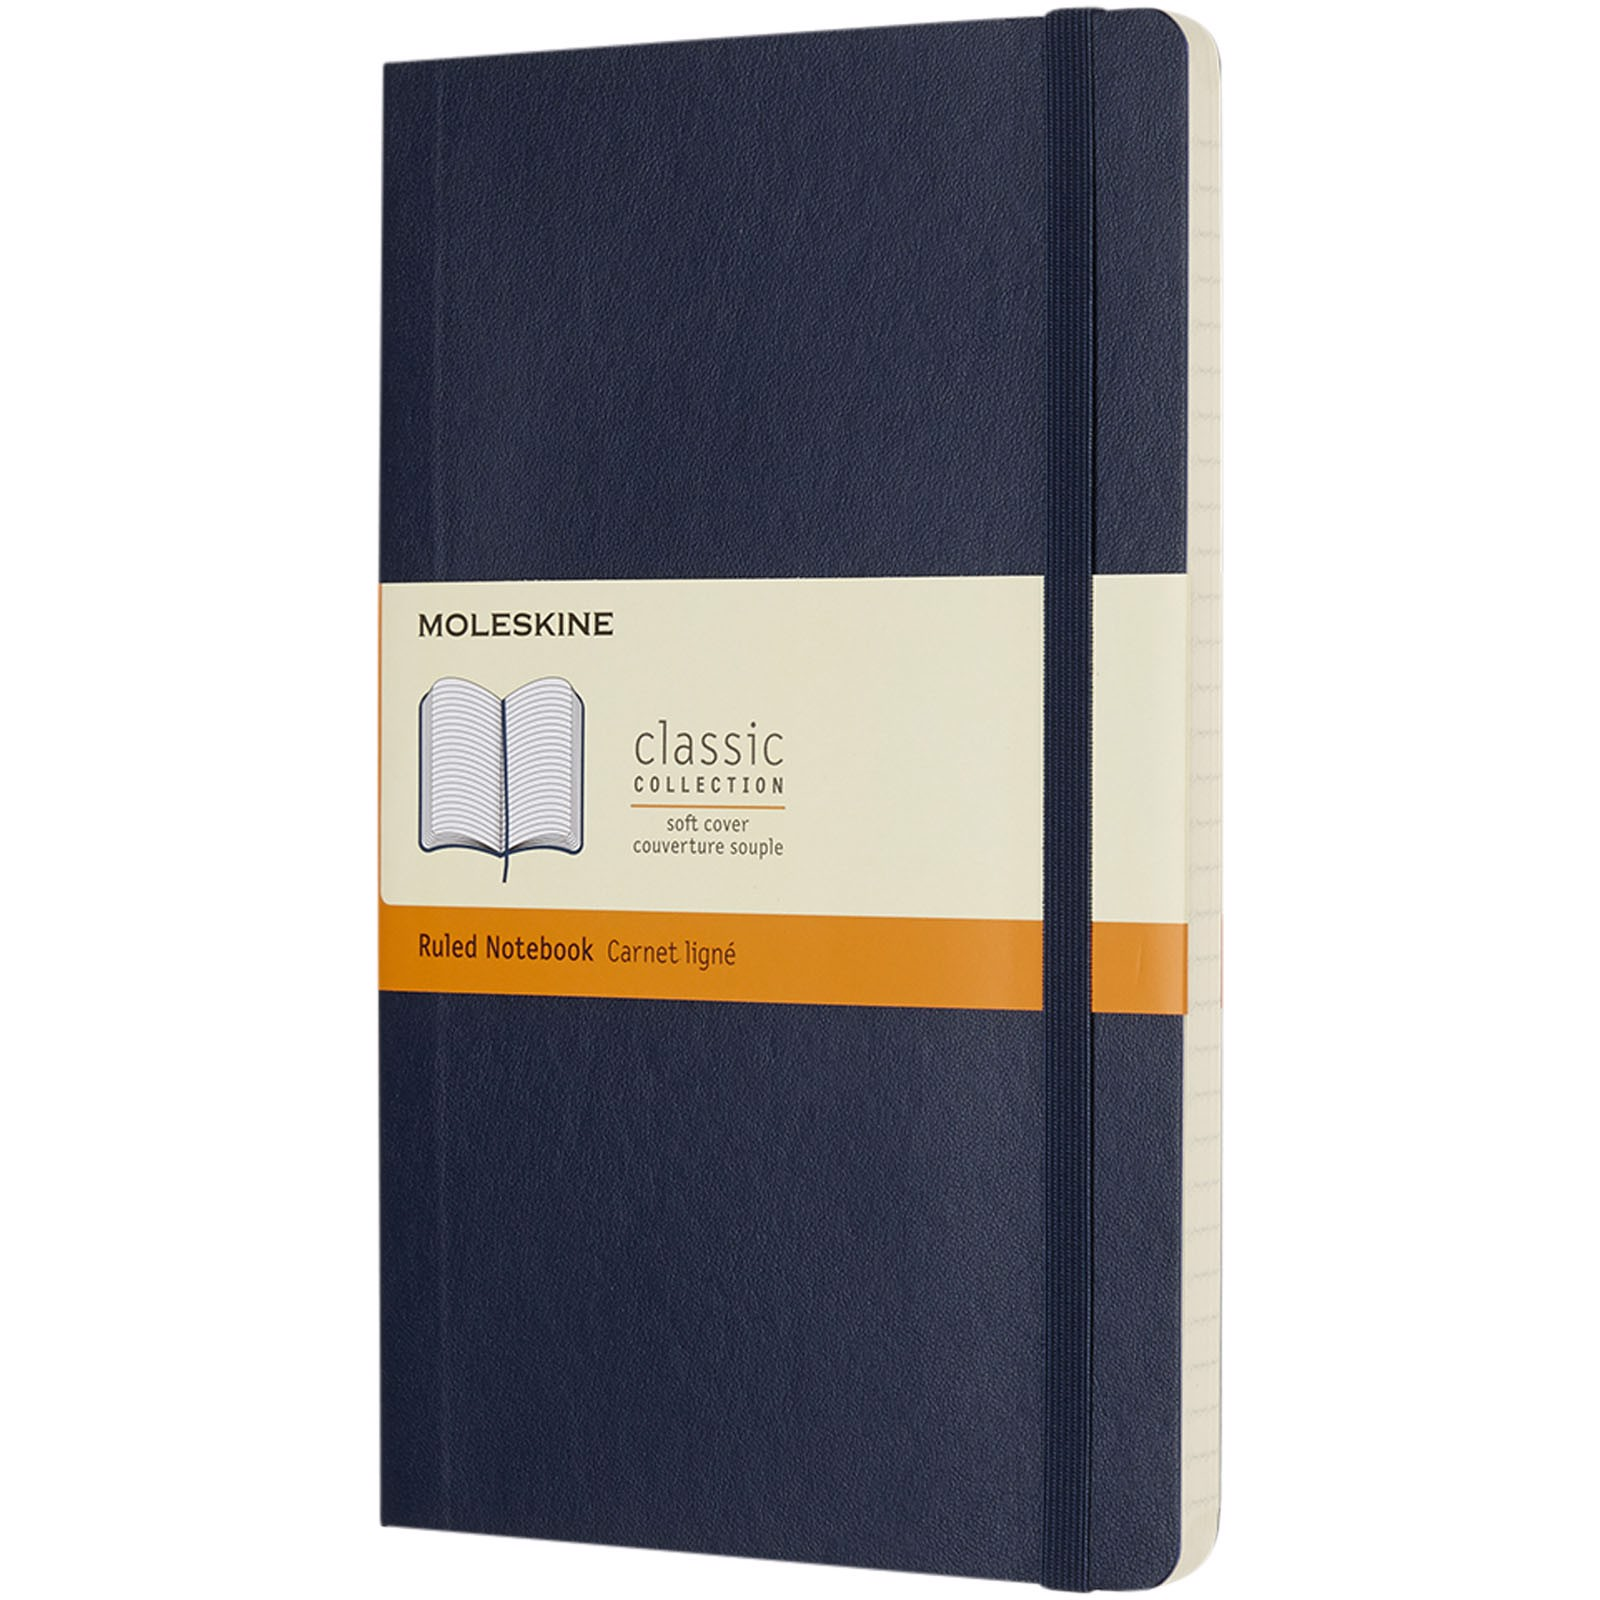 Classic L soft cover notebook - ruled - Sapphire blue